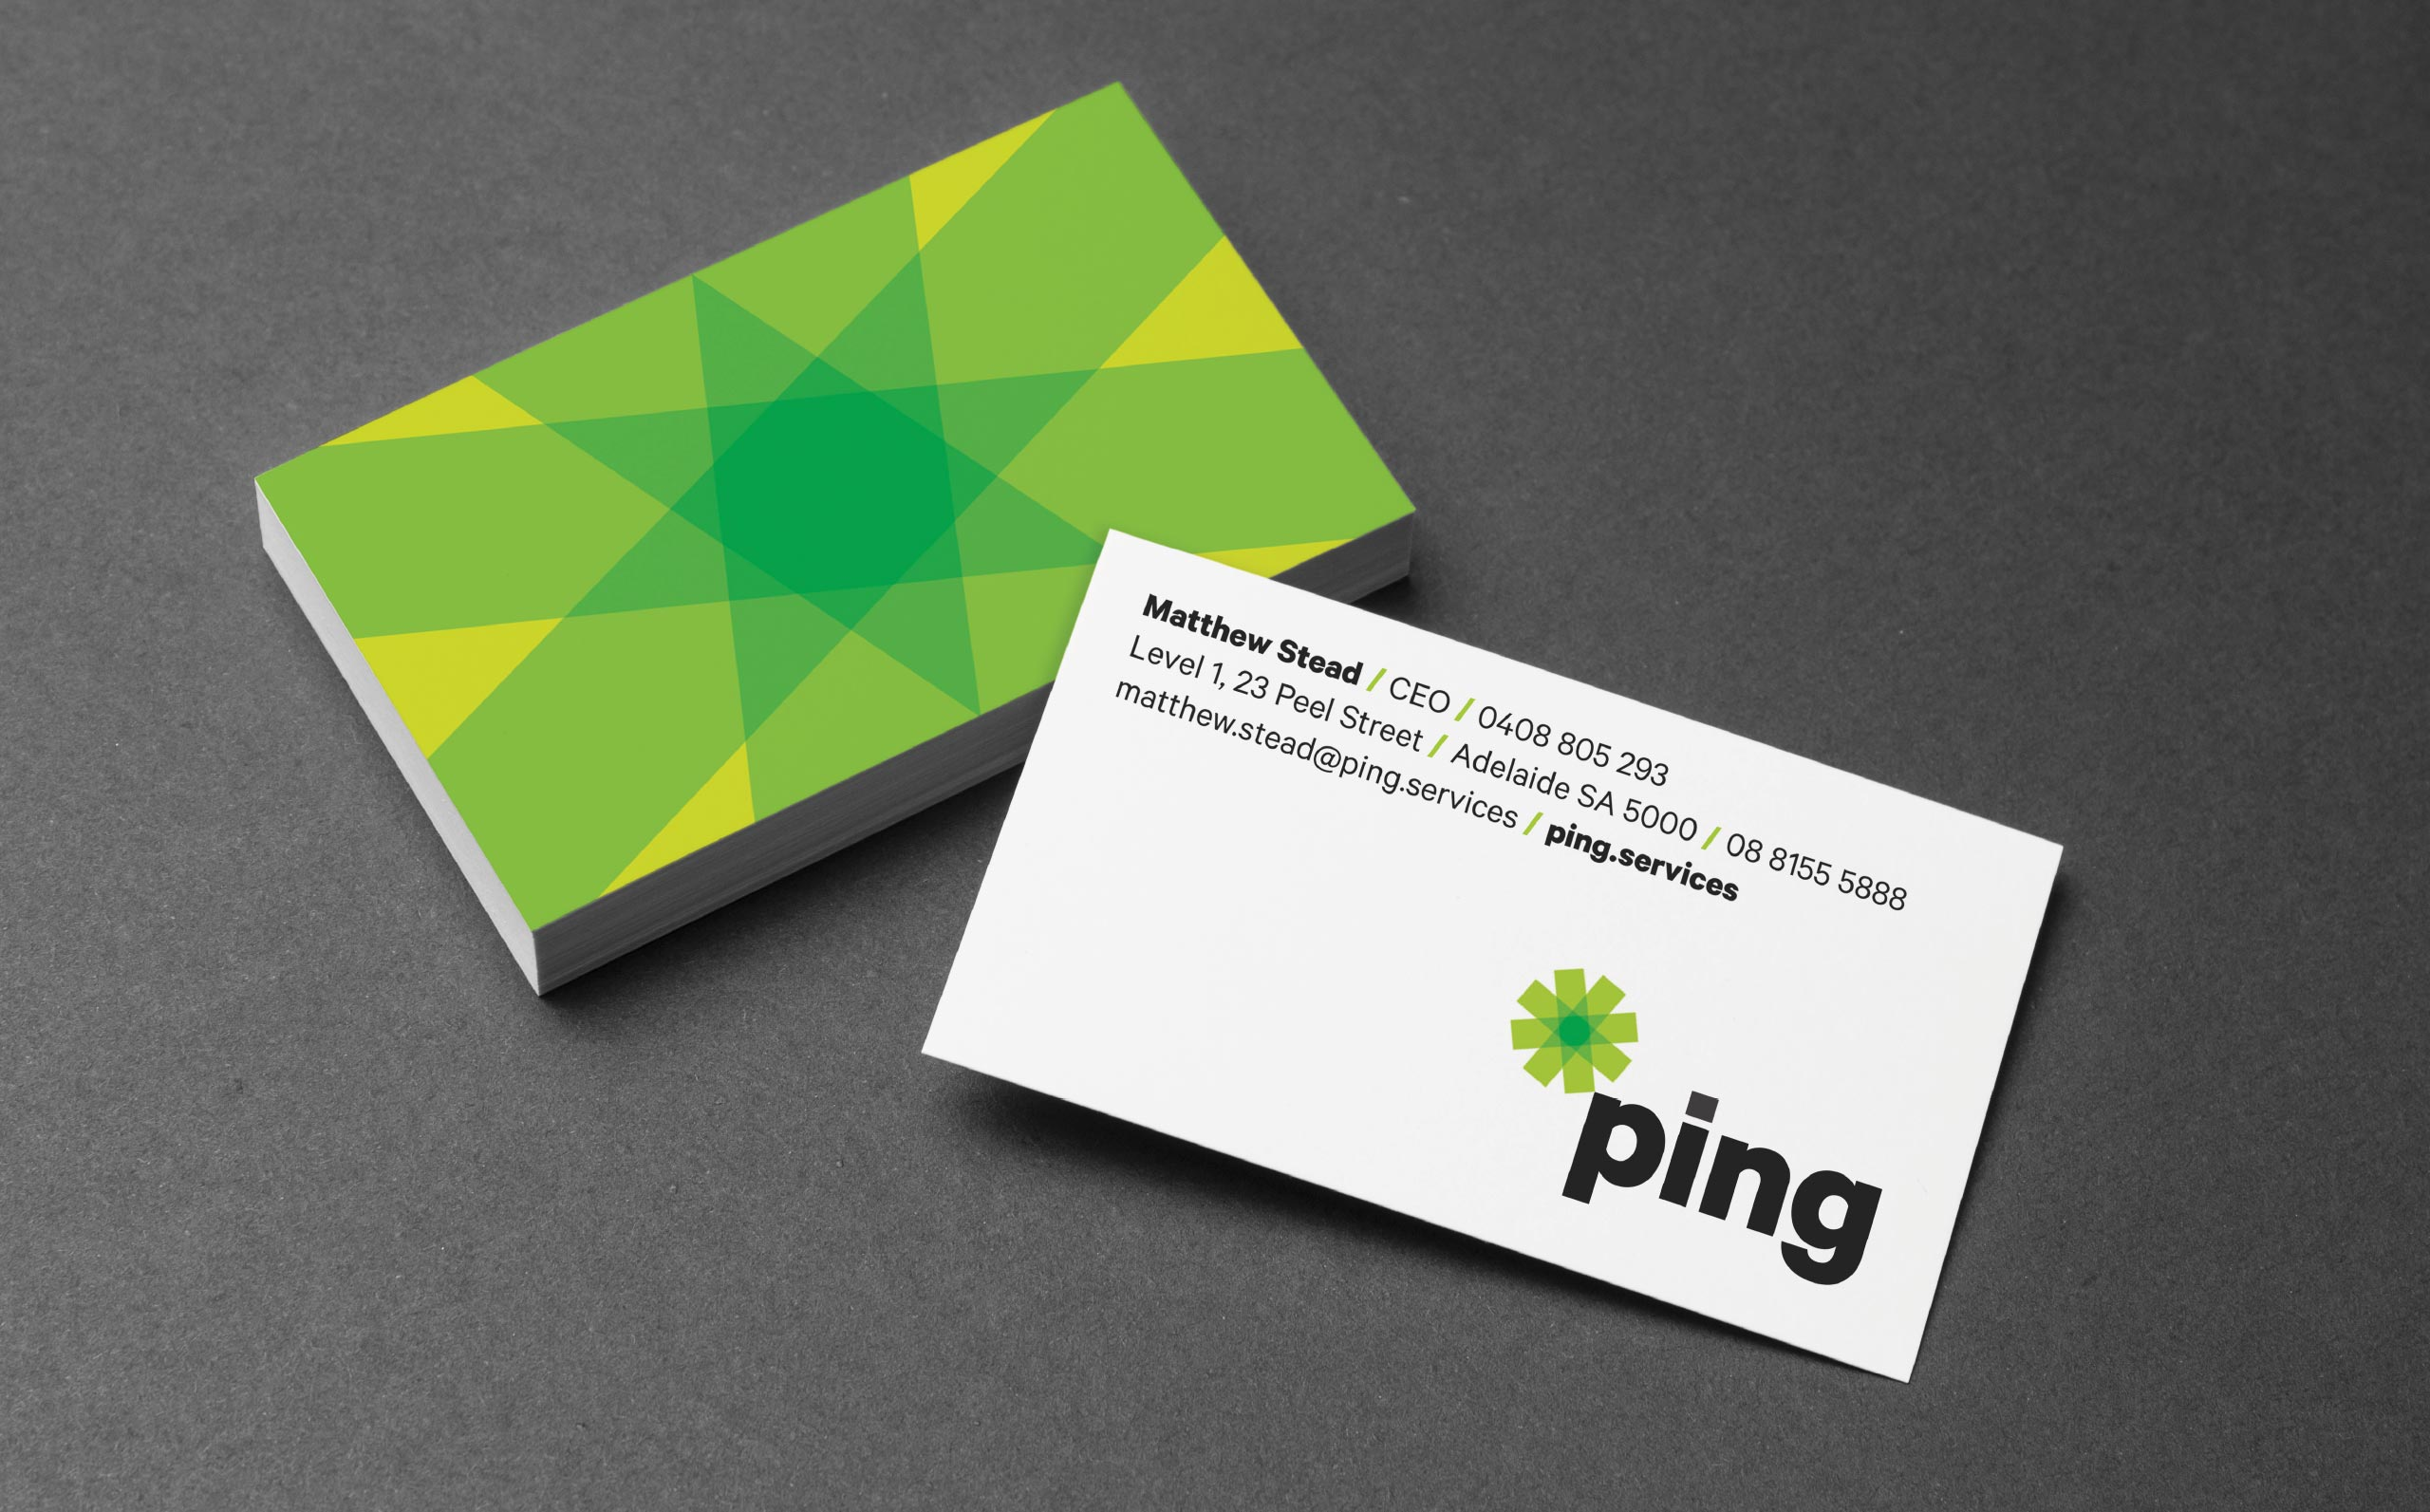 Ping Services business card